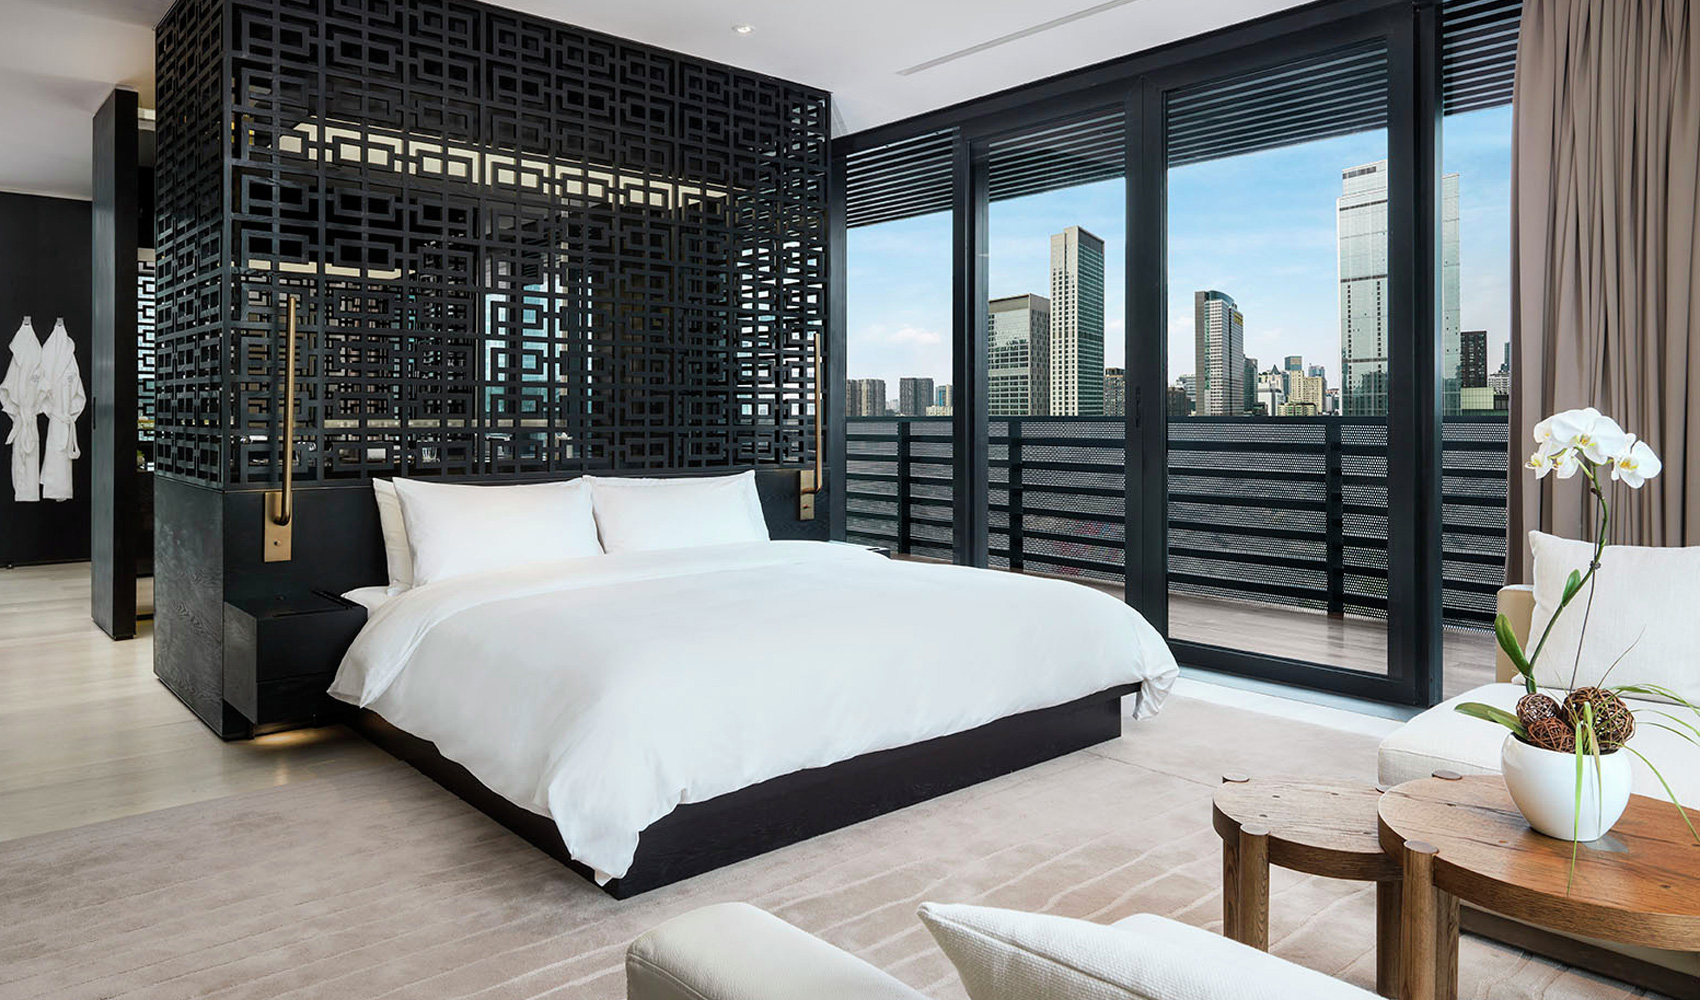 Boutique-Hotels-The-New-Face-of-Luxury-800x600-iml-travel-www.imltravel.com  (4) - IML Travel Services